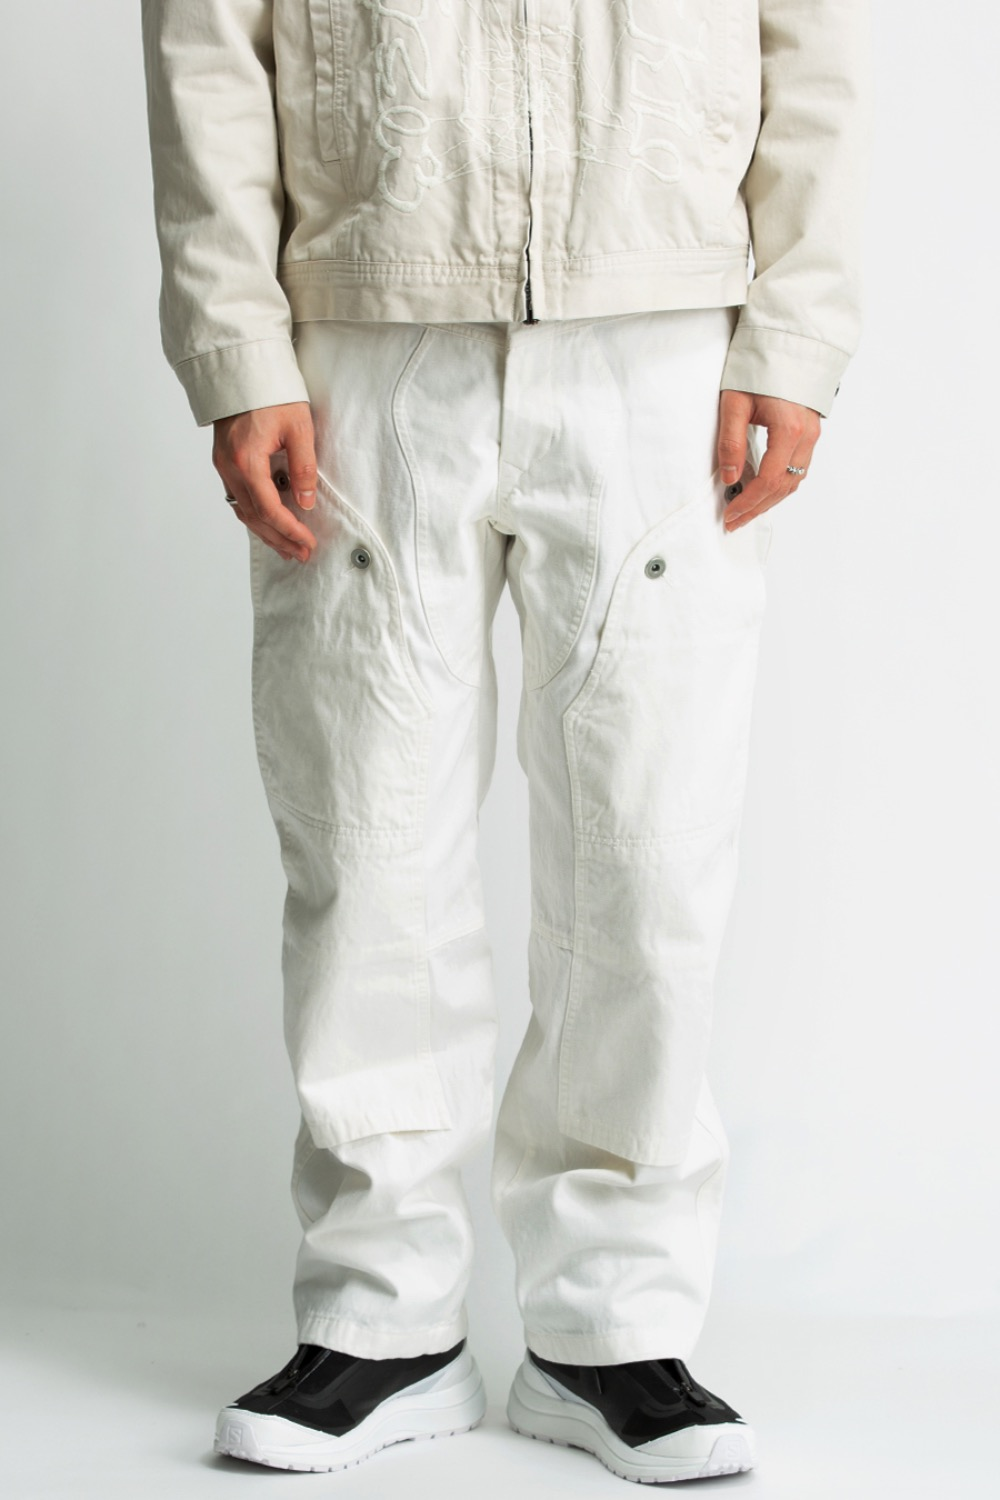 400 PAINTER PANTS WHITE